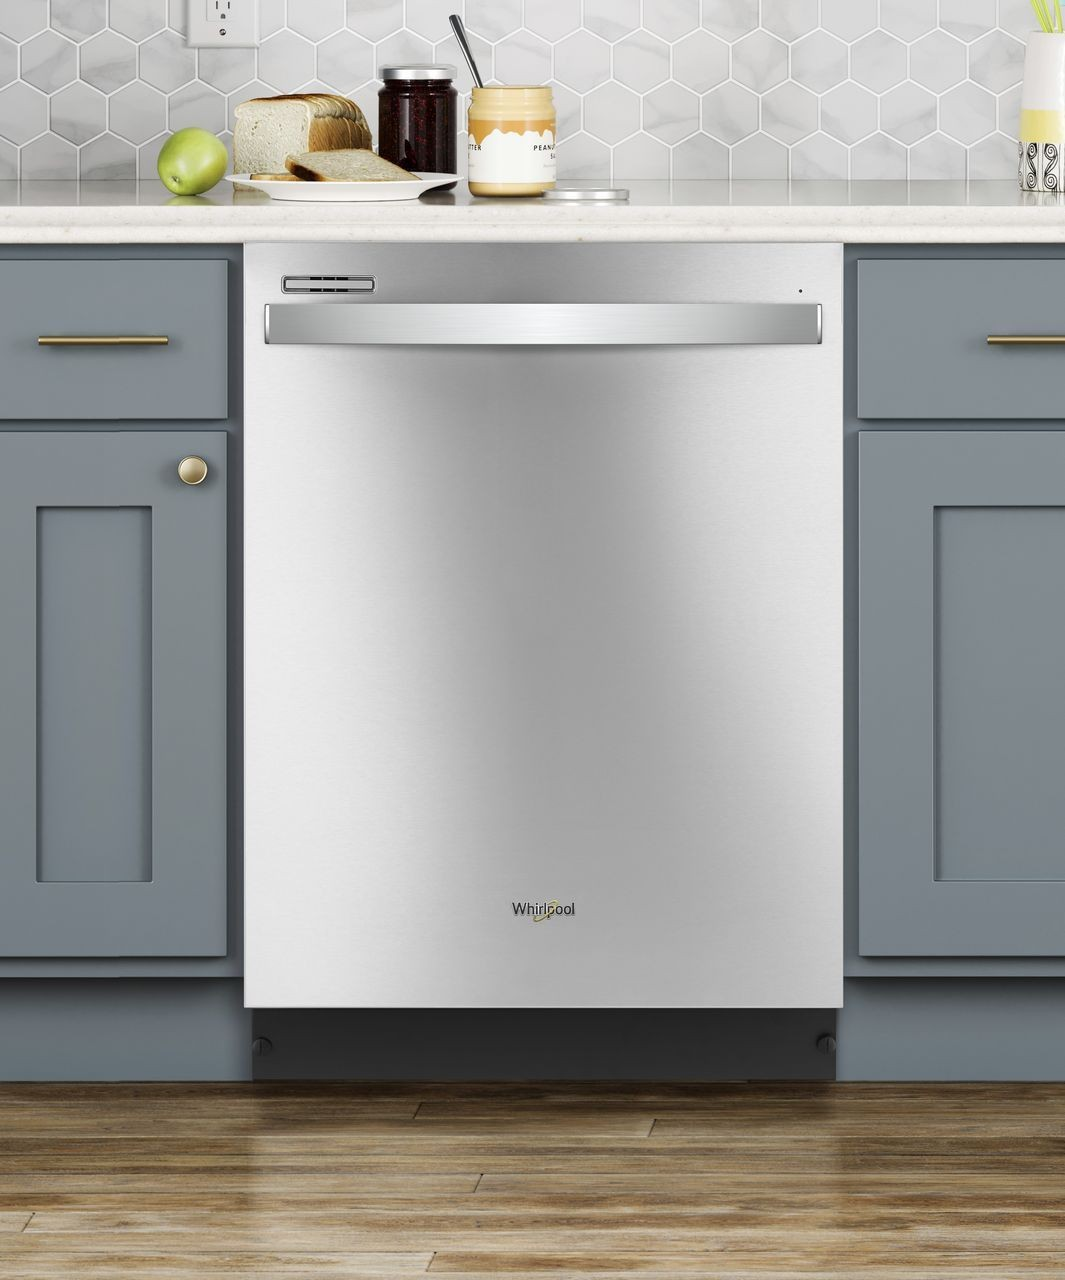 Wdt710pahz Whirlpool 24 Quot Dishwasher With Sensor Wash